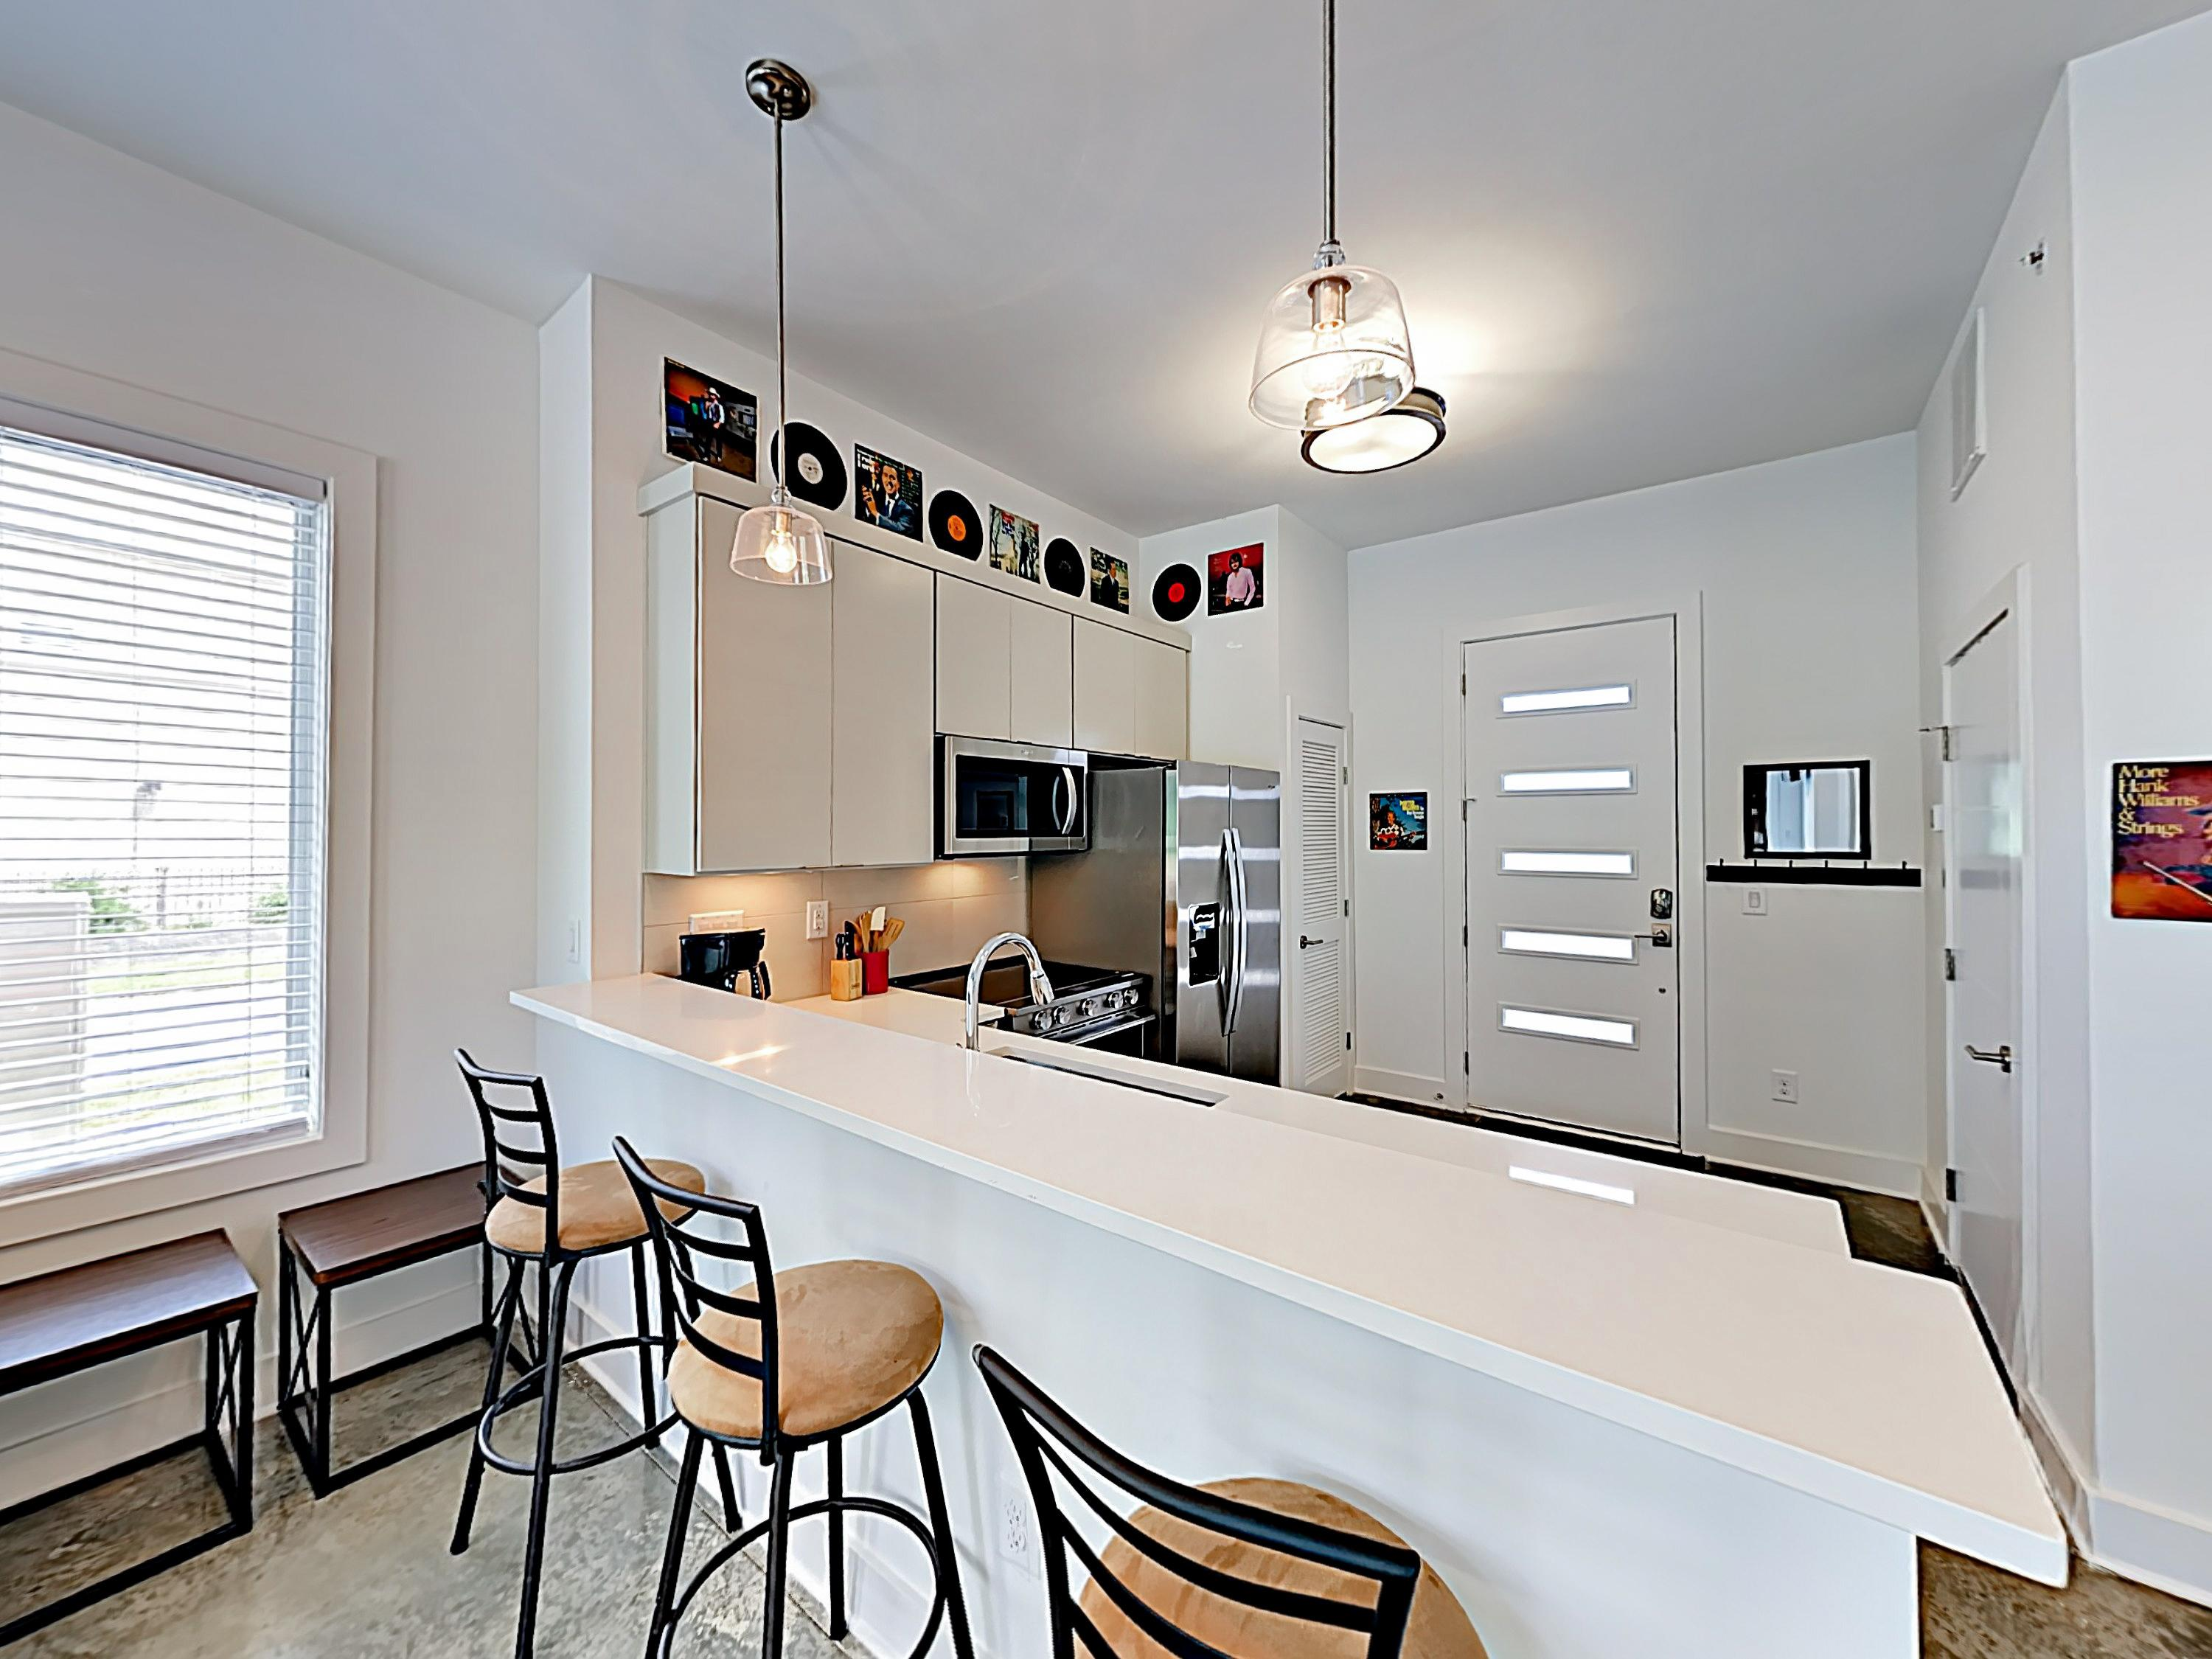 The modern, well-equipped kitchen has a breakfast bar with seating for 3.